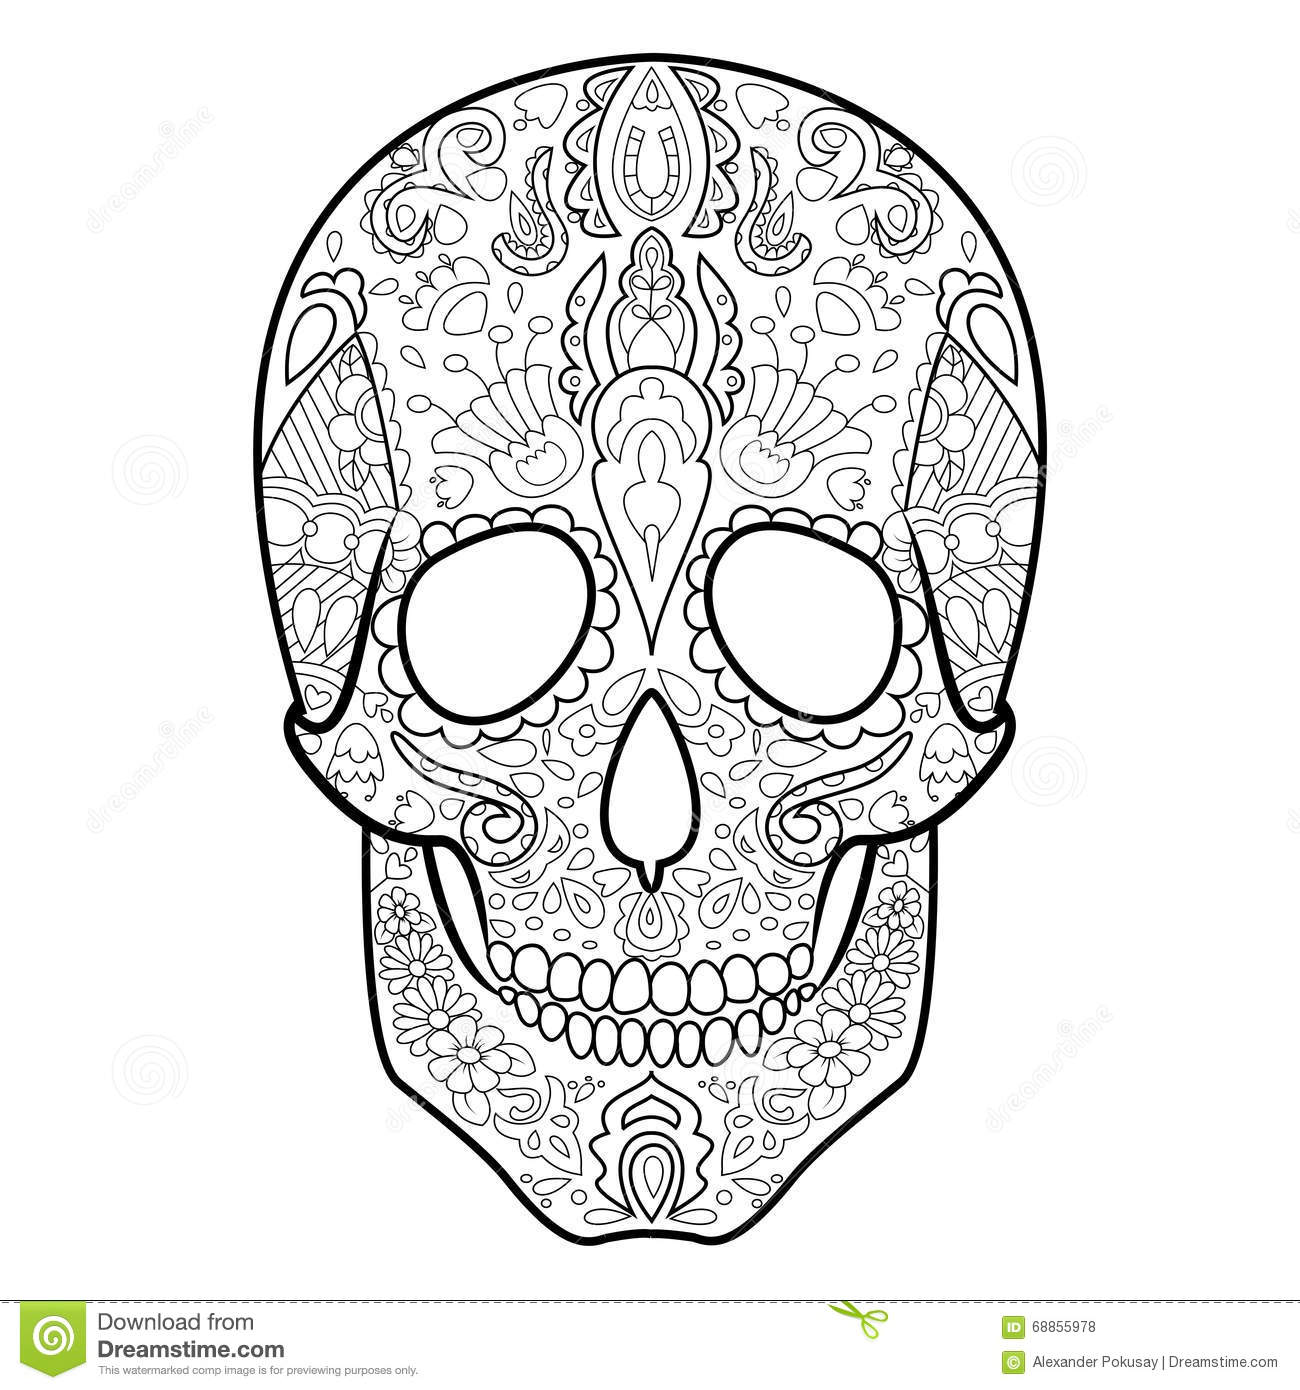 Skull Coloring Book For Adults Vector Stock Vector Illustration Of